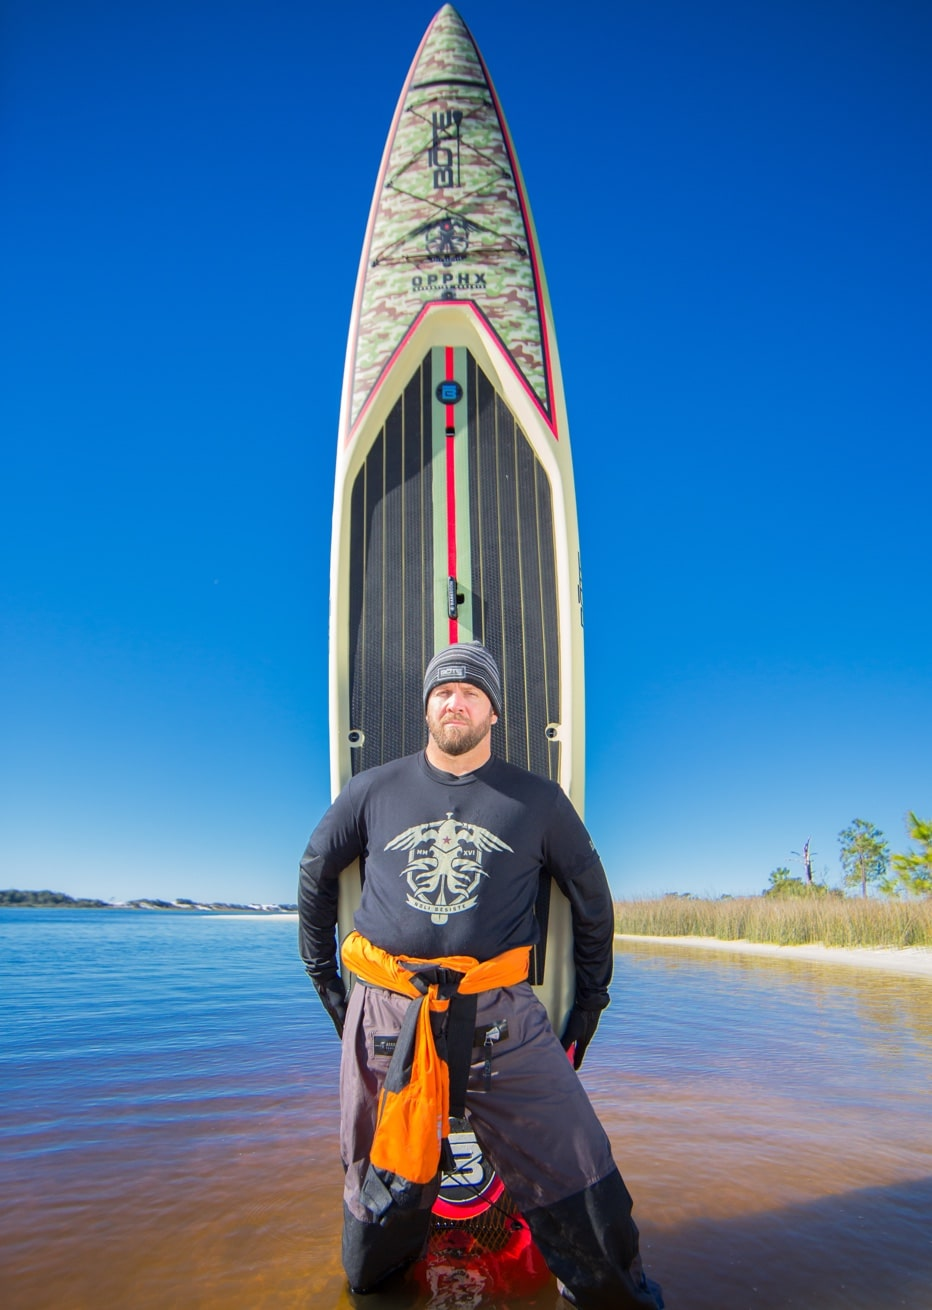 josh standing in front of BOTE operation phoenix paddle board